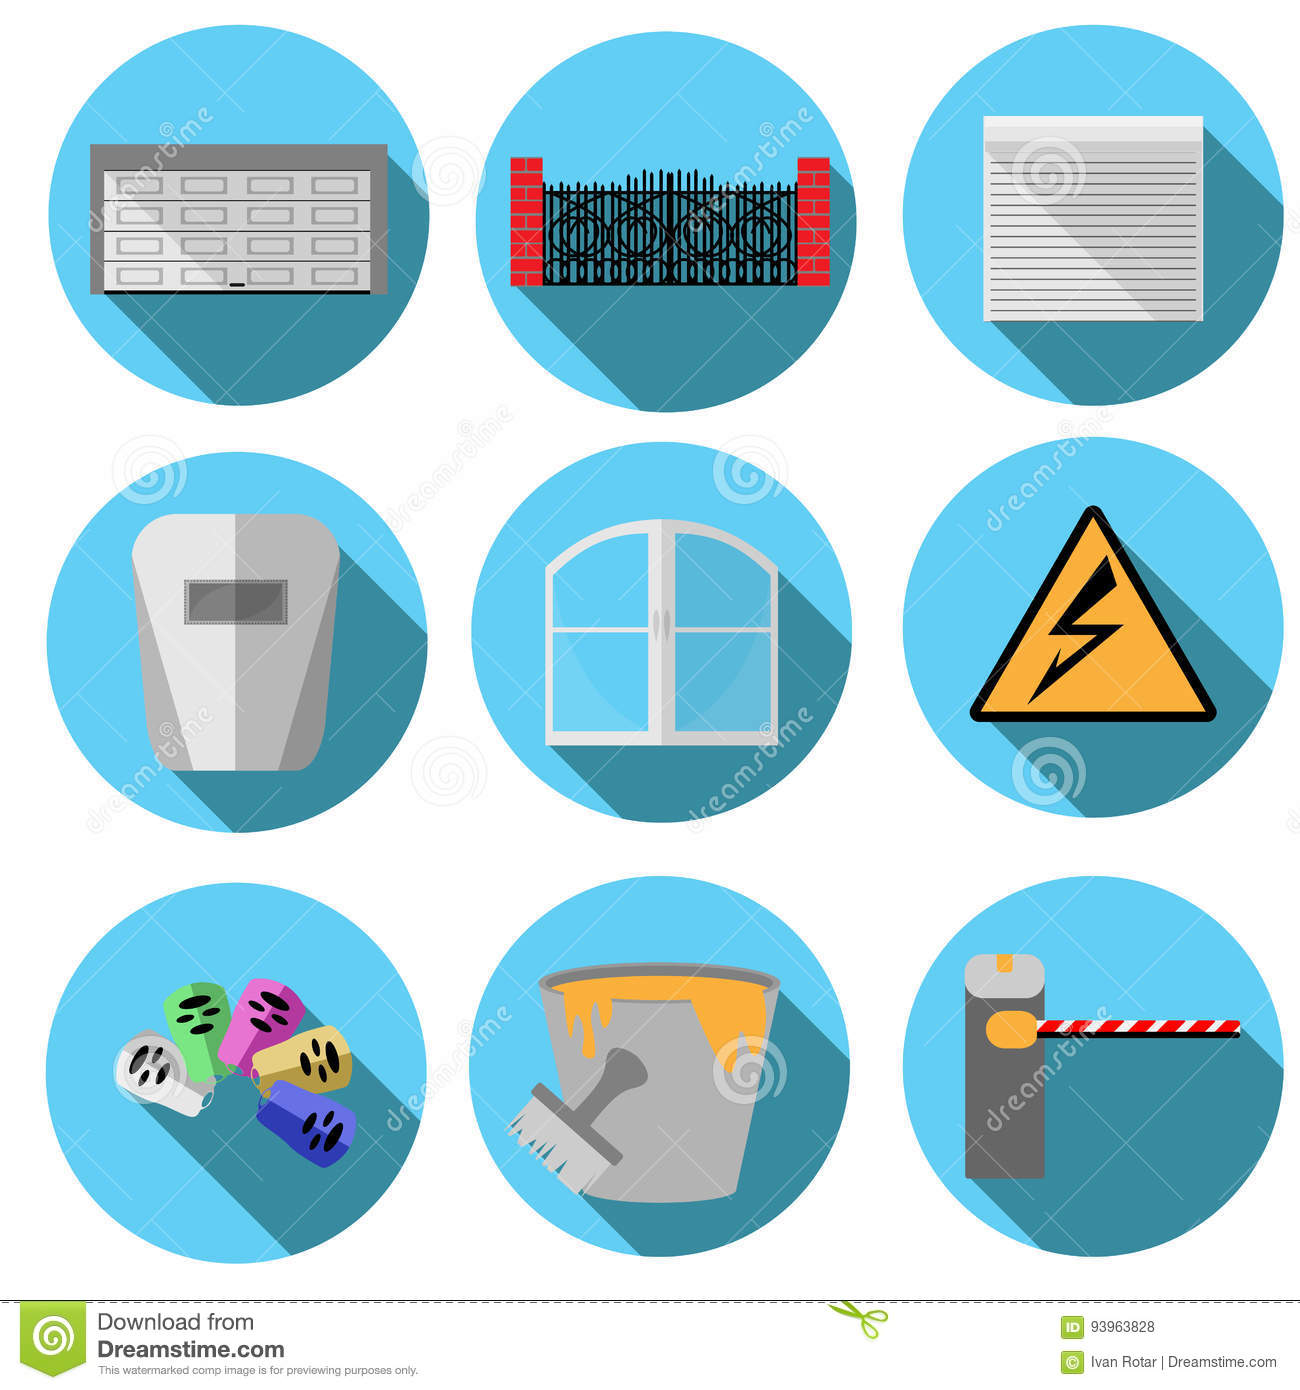 Vector images related to construction